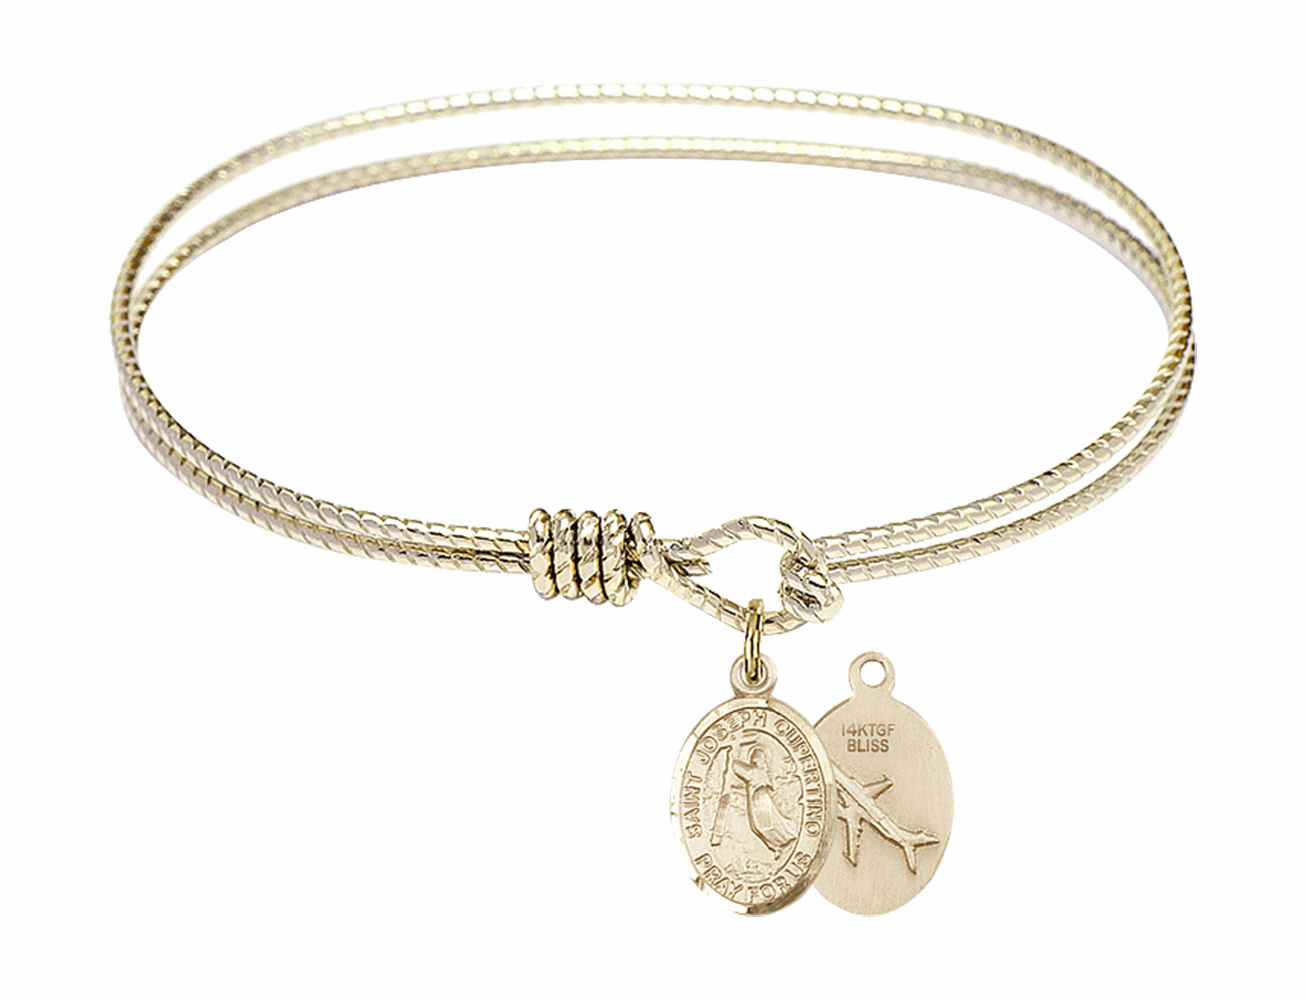 Twisted Joseph of Cupertino Airplane Bangle 14kt Gold-filled Charm Bracelet by Bliss